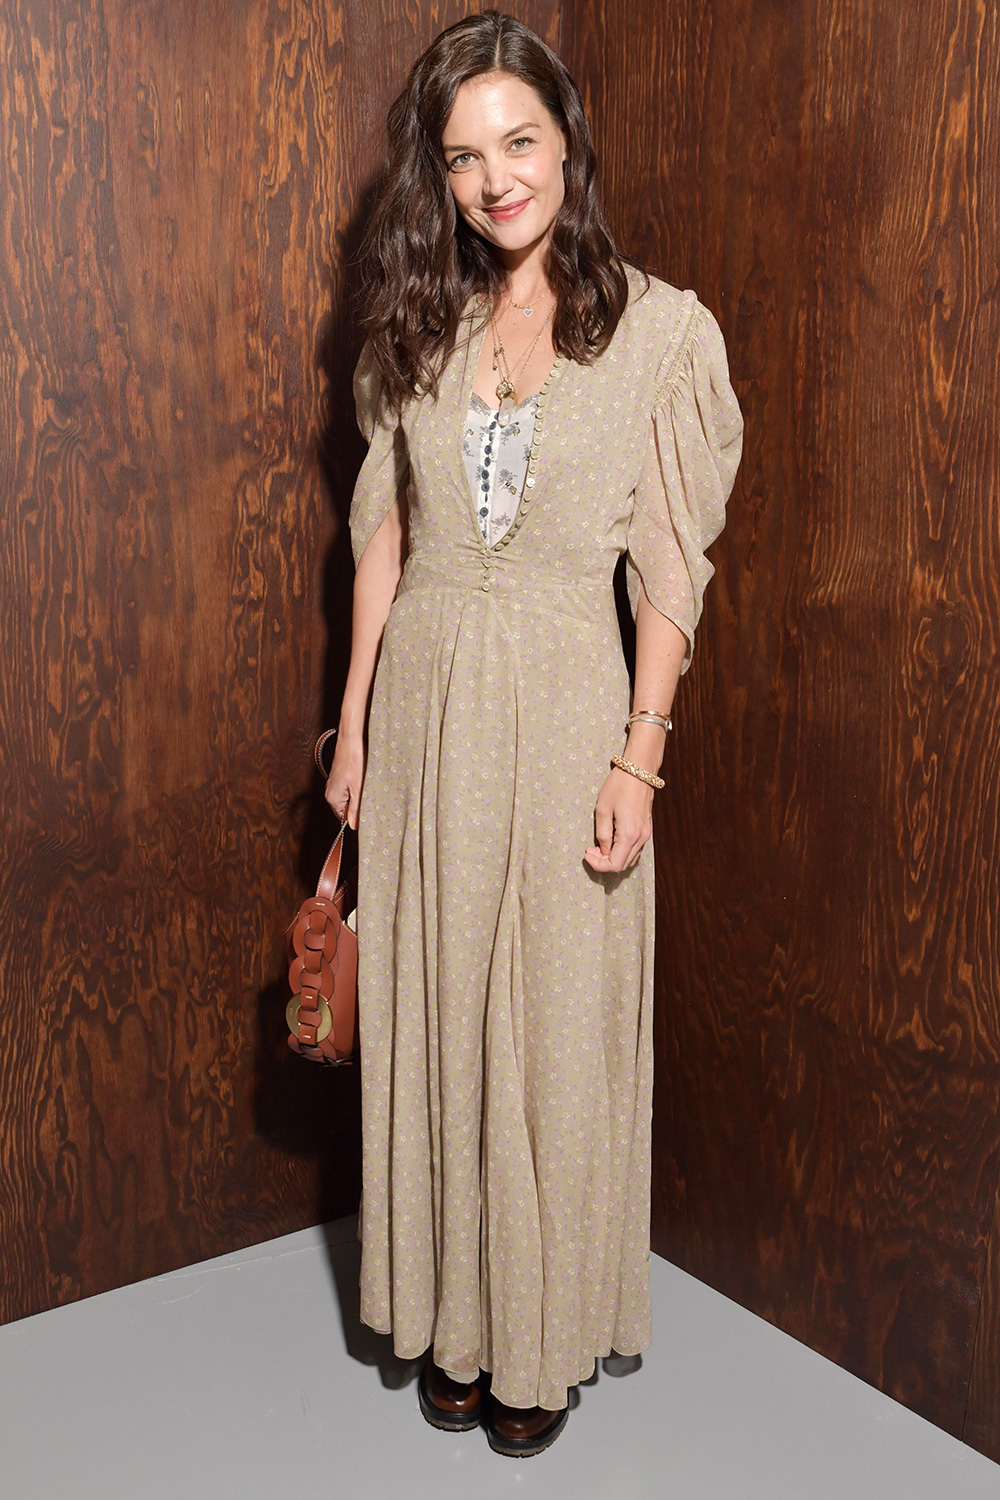 Katie Holmes in the front row Chloe show, Front Row, Fall Winter 2020, Paris Fashion Week, France - 27 Feb 2020